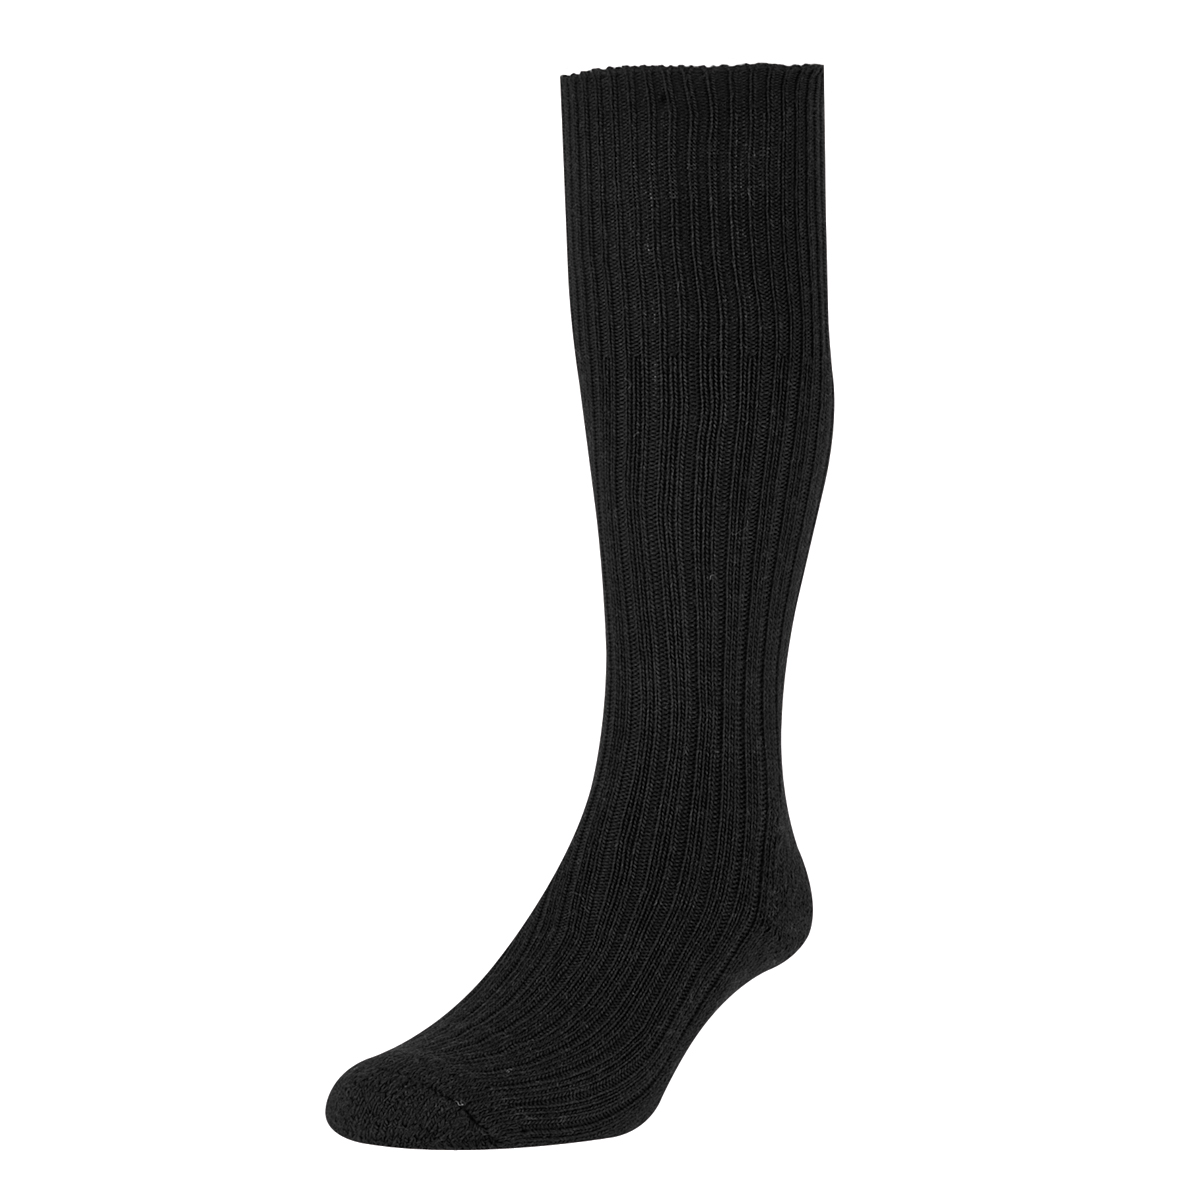 HJ Hall Commando Wool Socks, 11-13 UK Black 12 pairs HJ3000